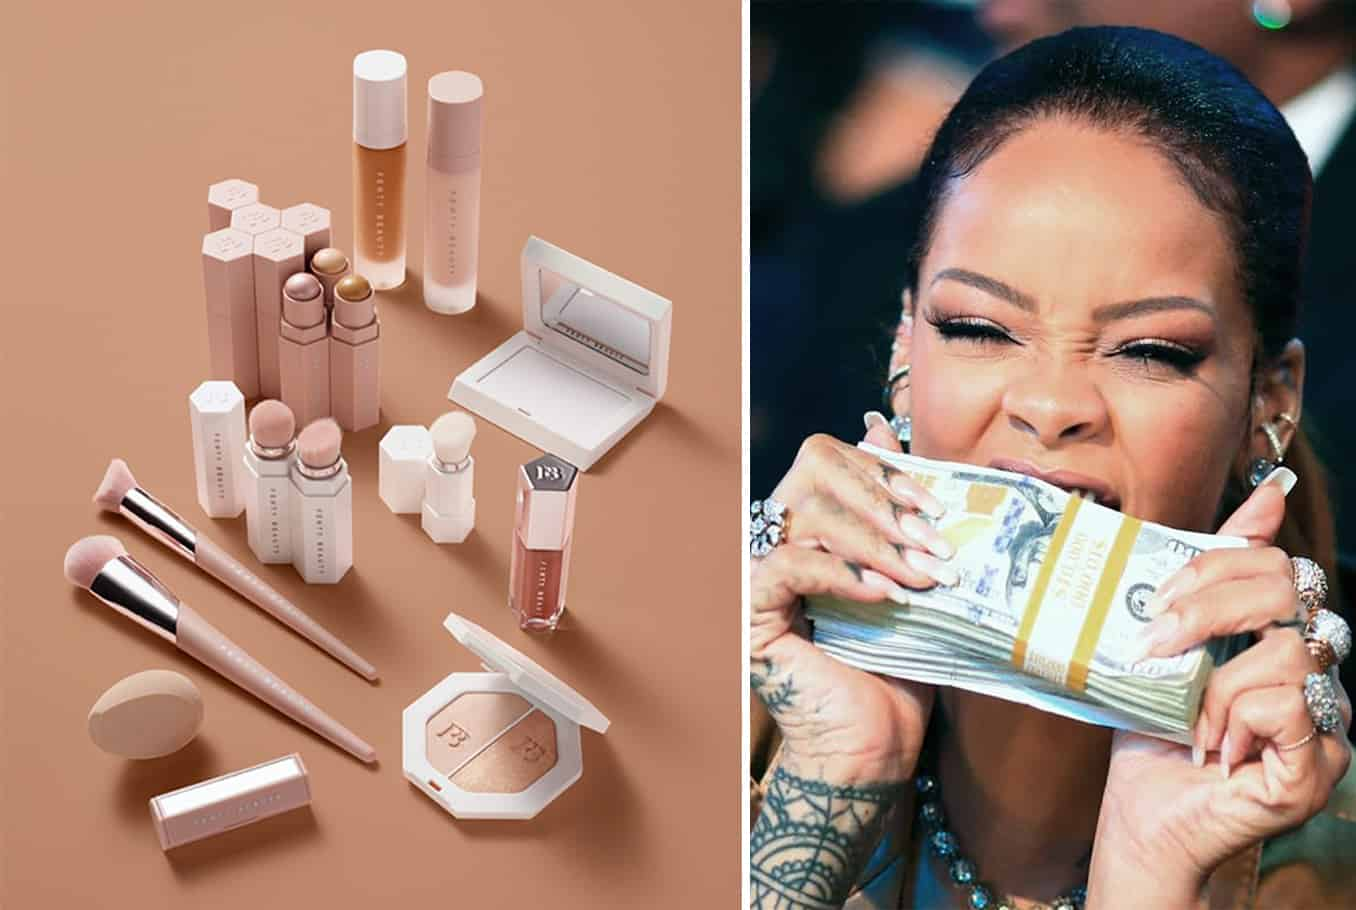 fenty money rihanna